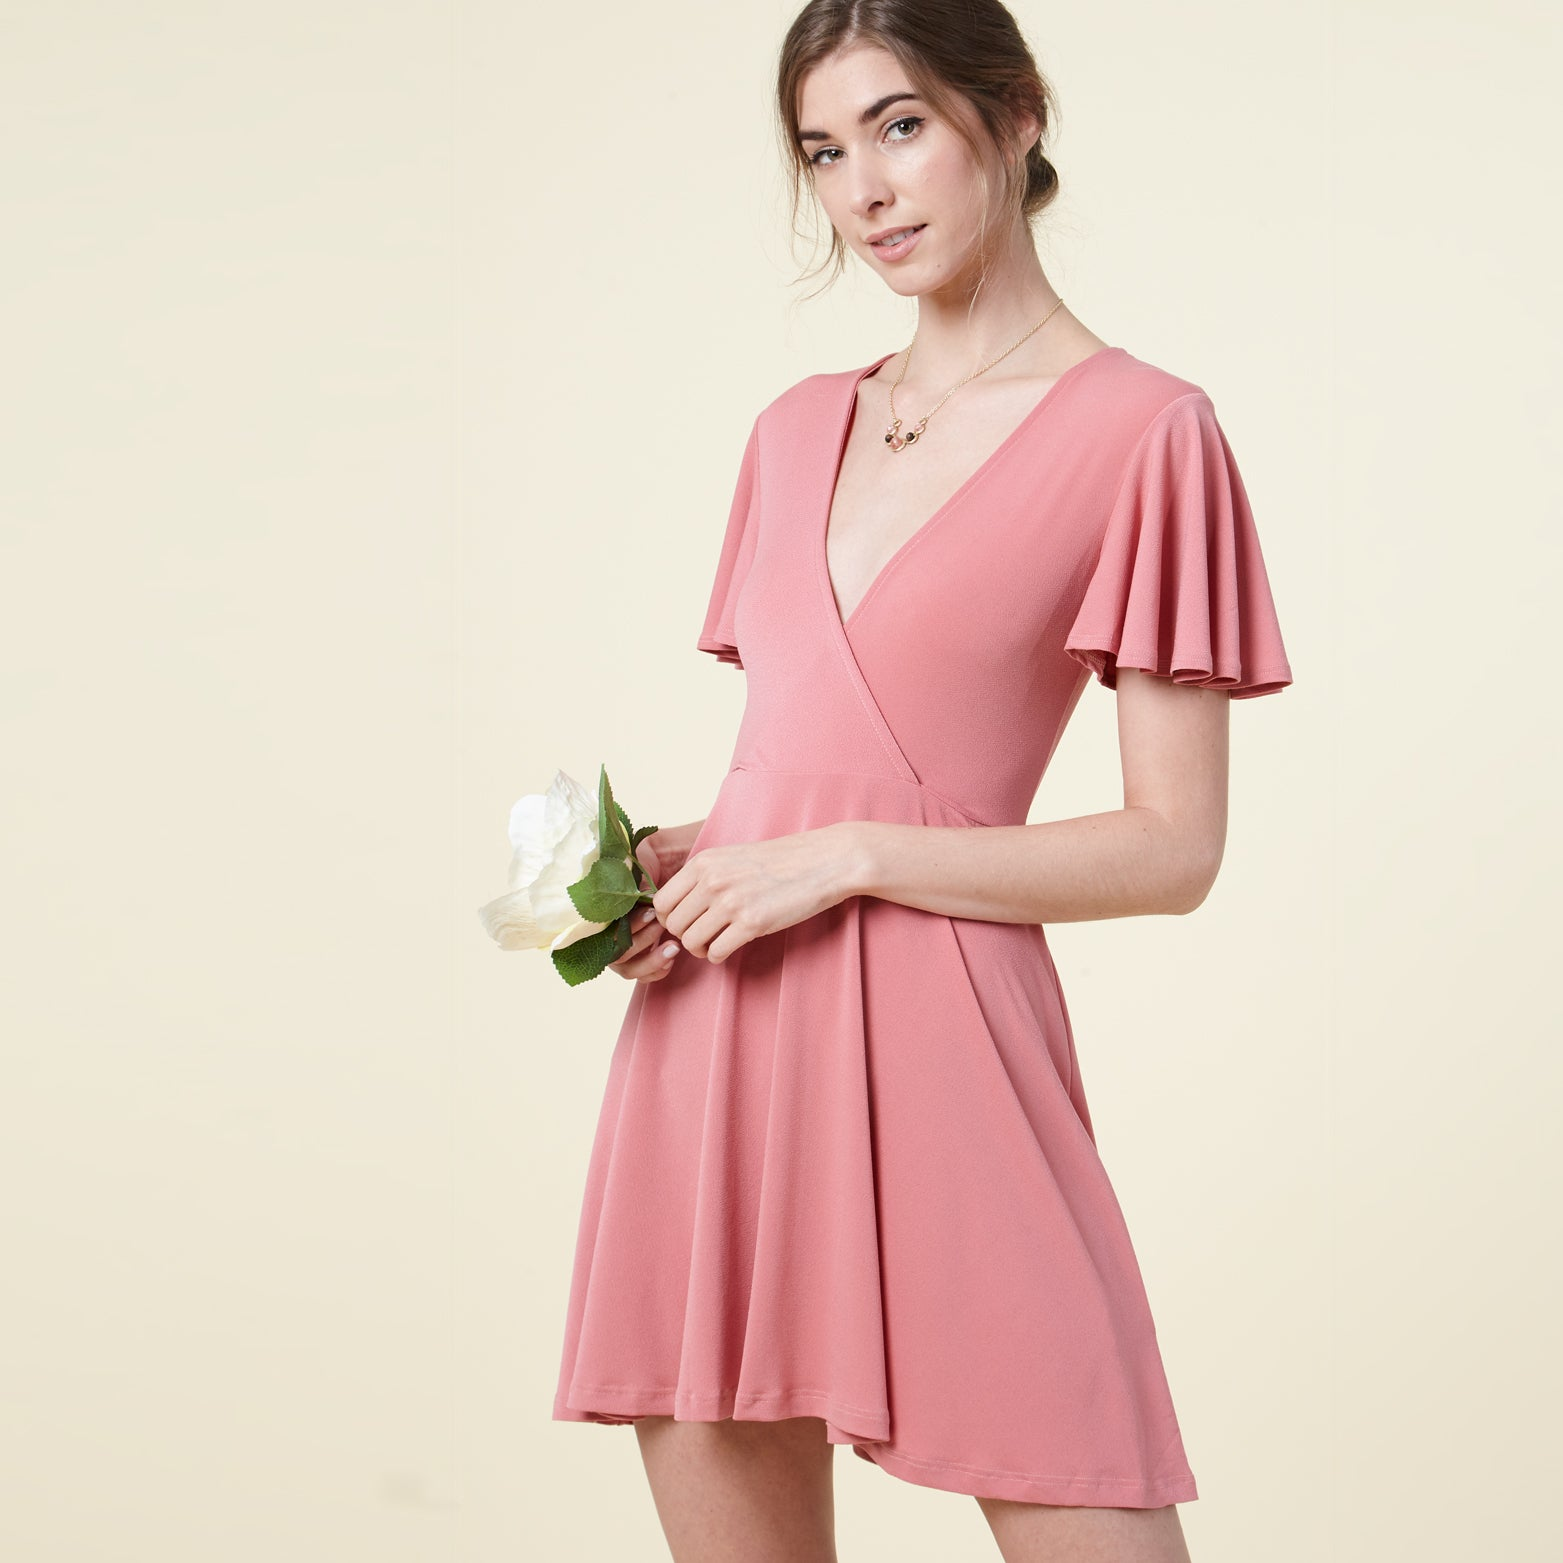 Flutter Sleeve Skater Dress - Love, Kuza